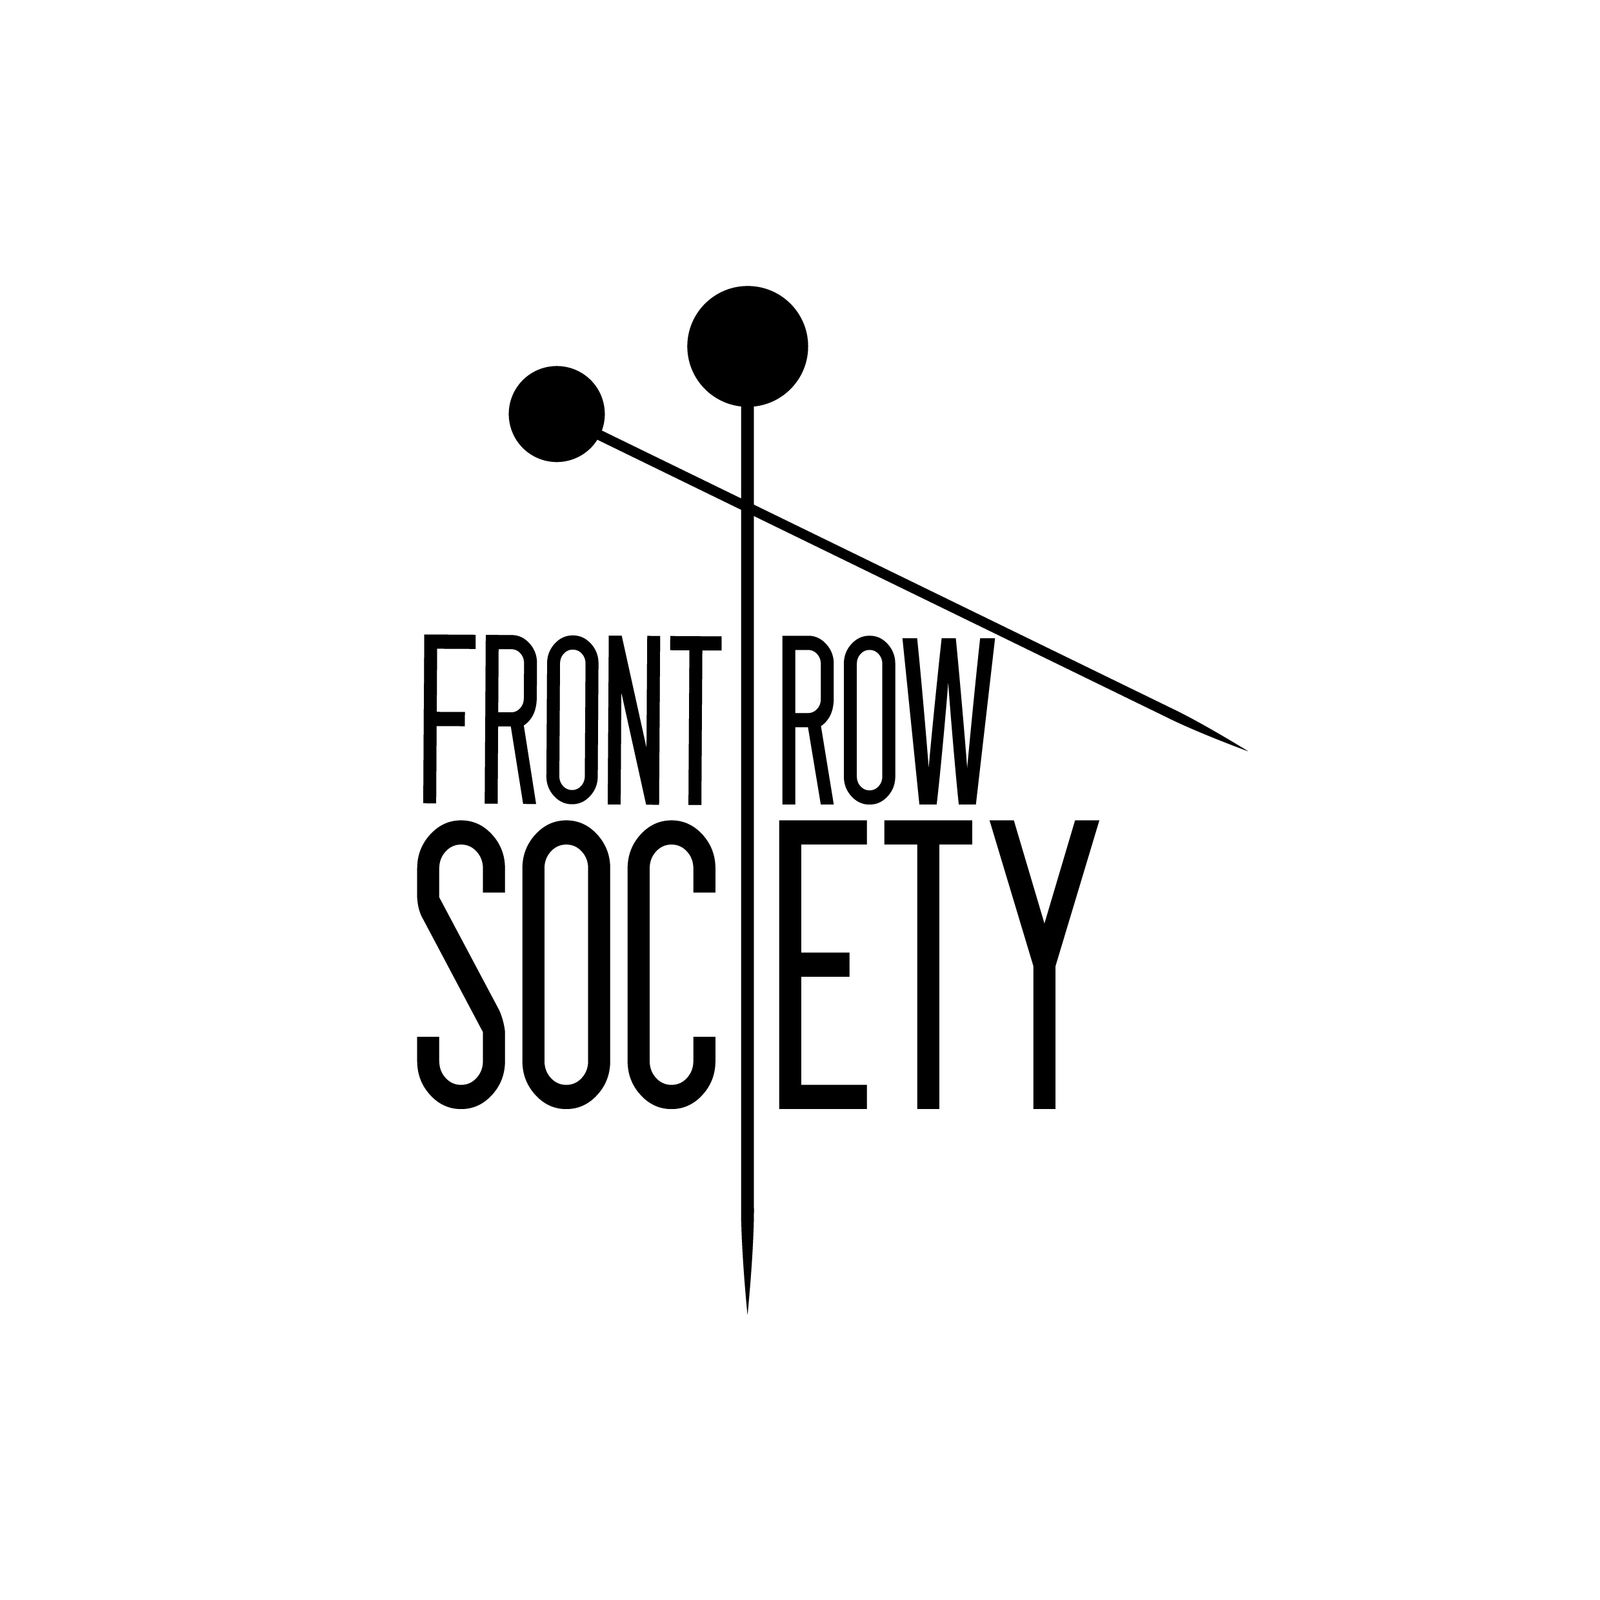 FRONT ROW SOCIETY (Image 1)